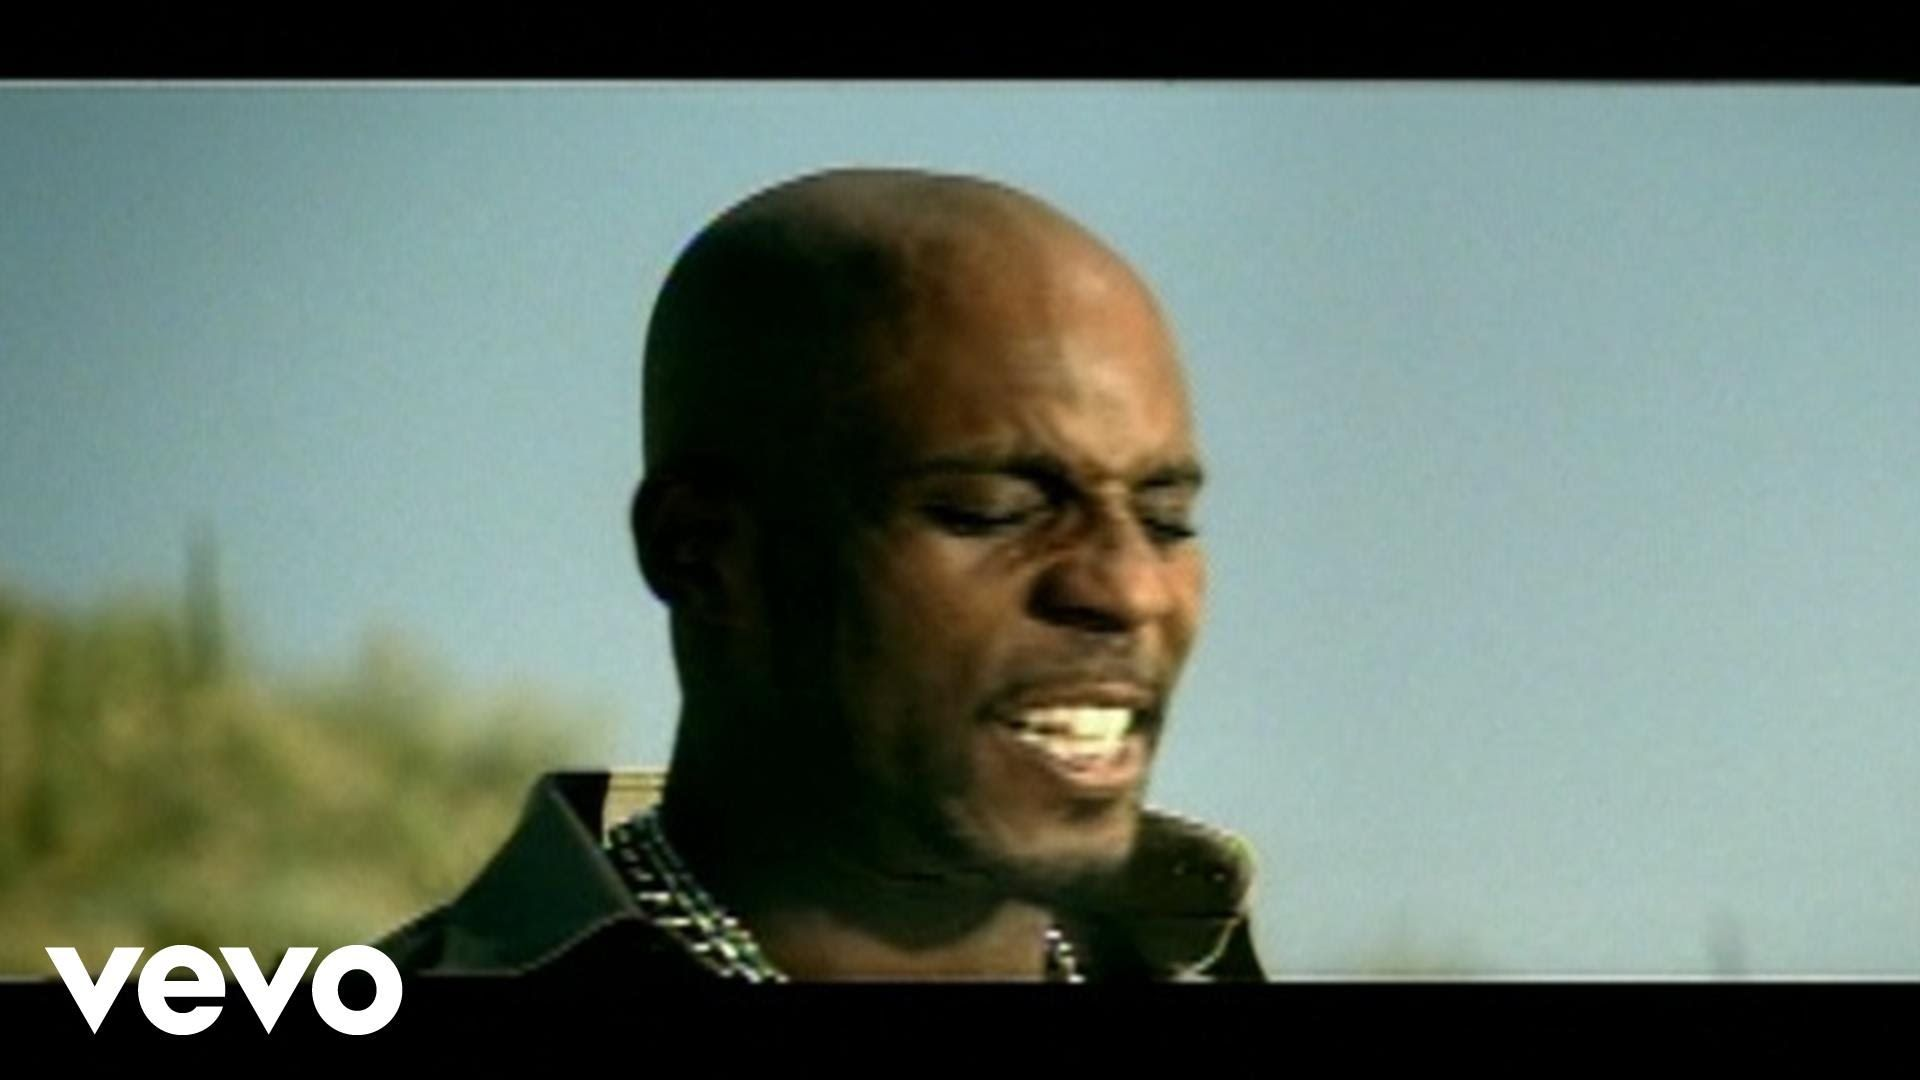 No weapon formed against me shall prosper!!! DMX - Lord Give